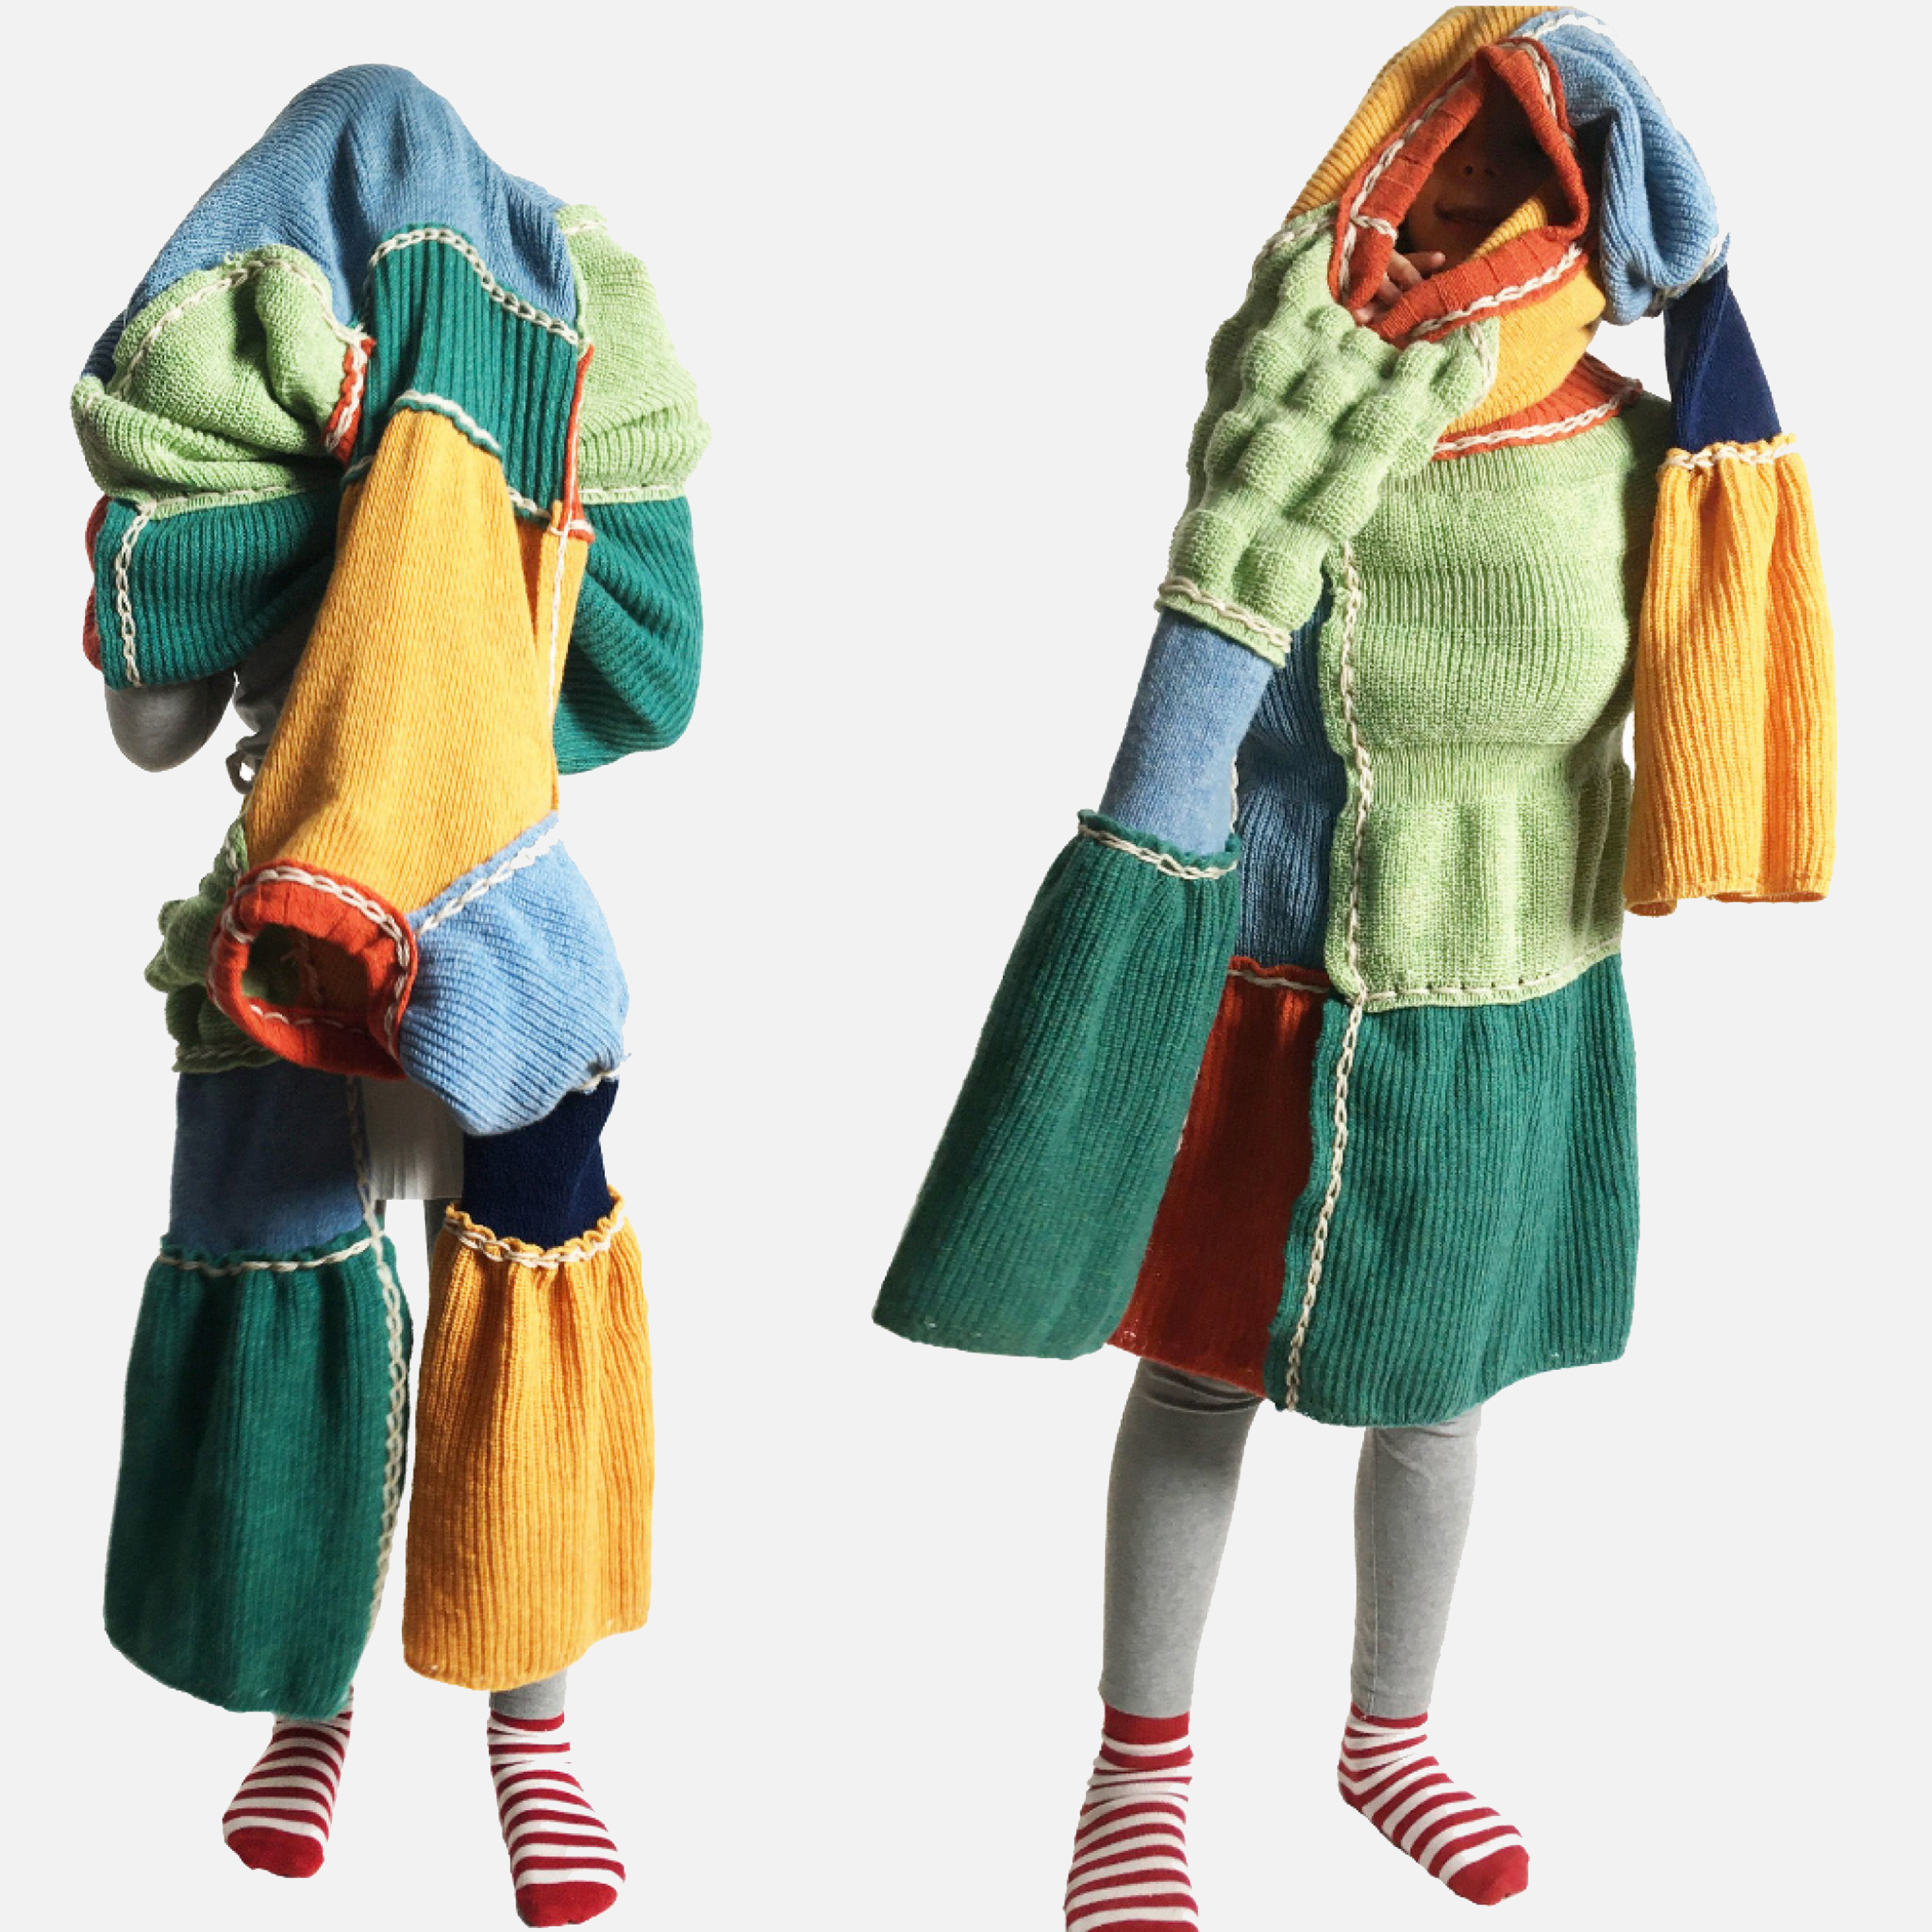 Children's clothes made from a Convertibles kit